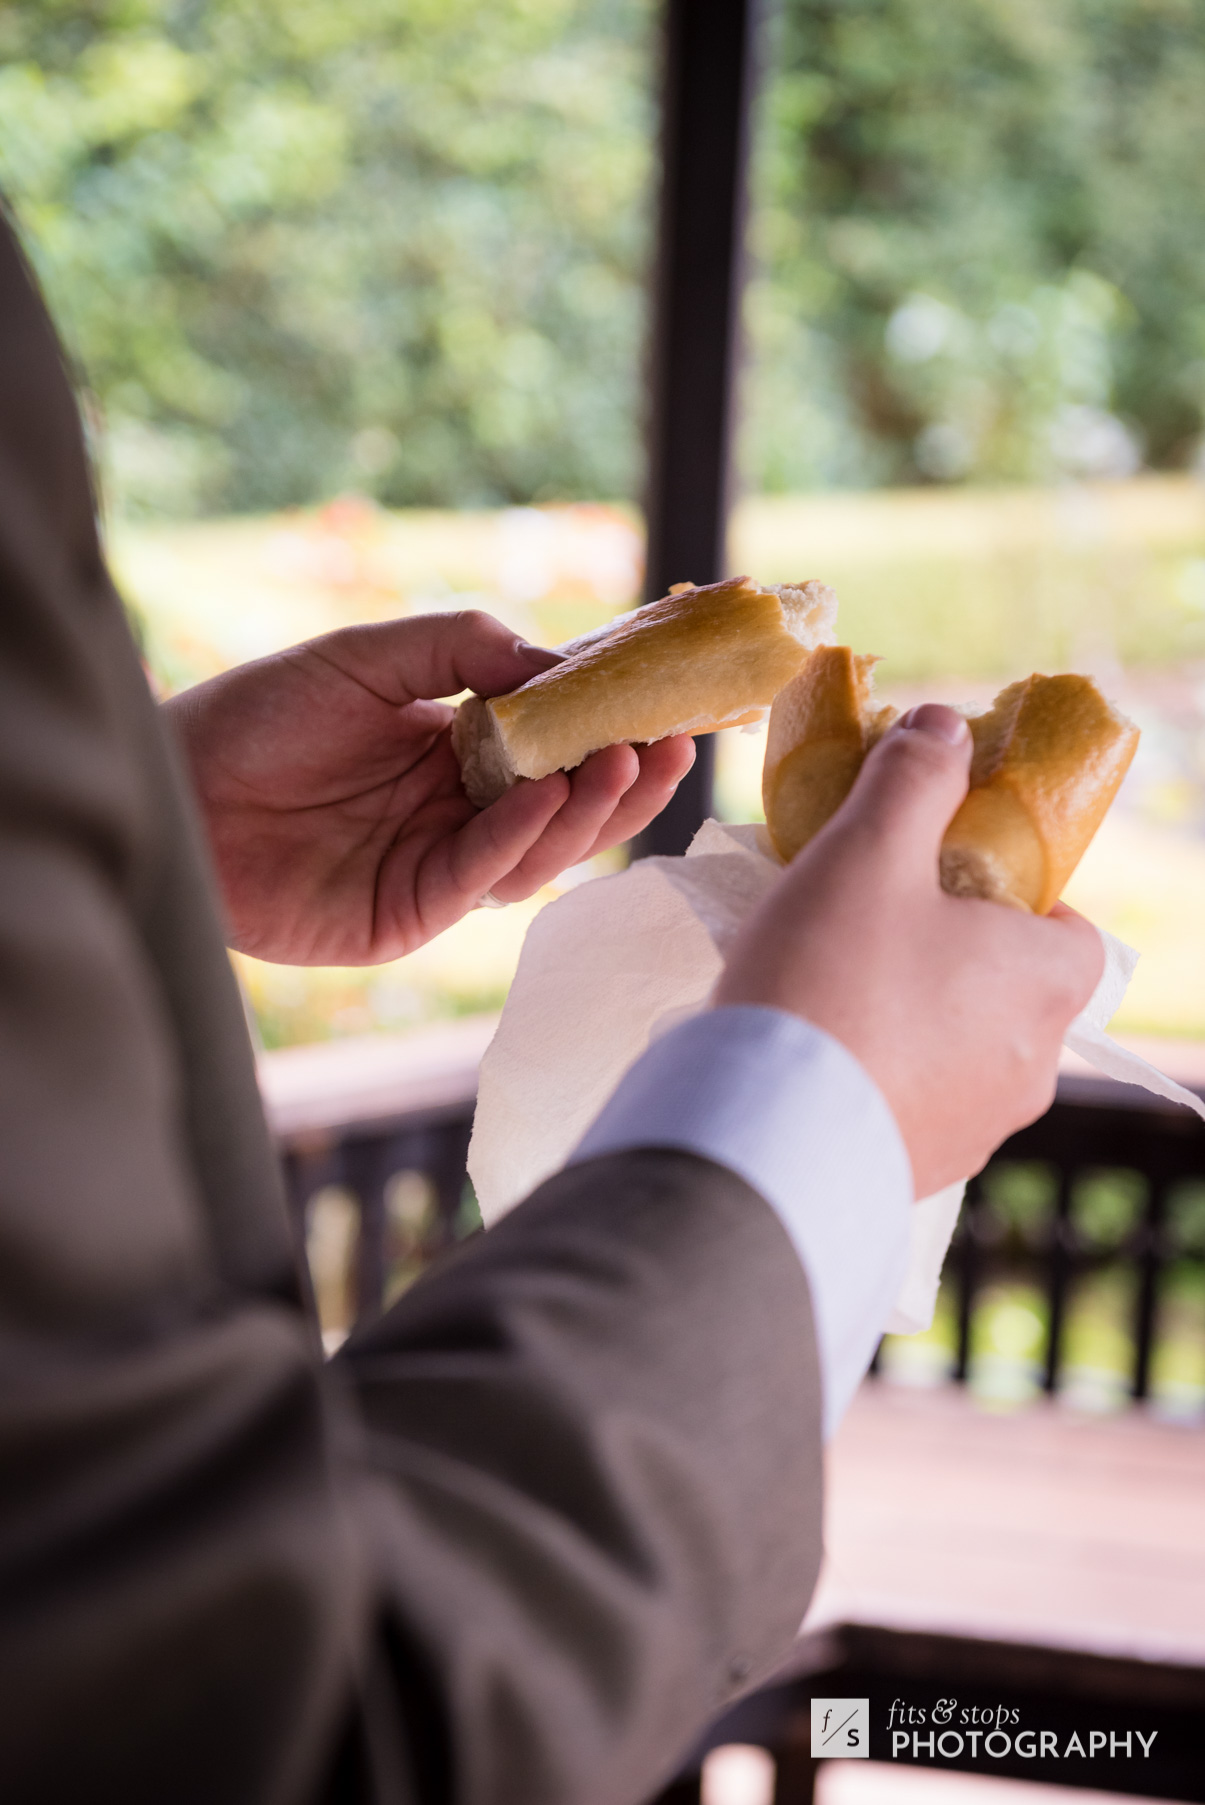 A pastor breaks a loaf of bread during a wedding ceremony, celebrating communion with the bride and groom.